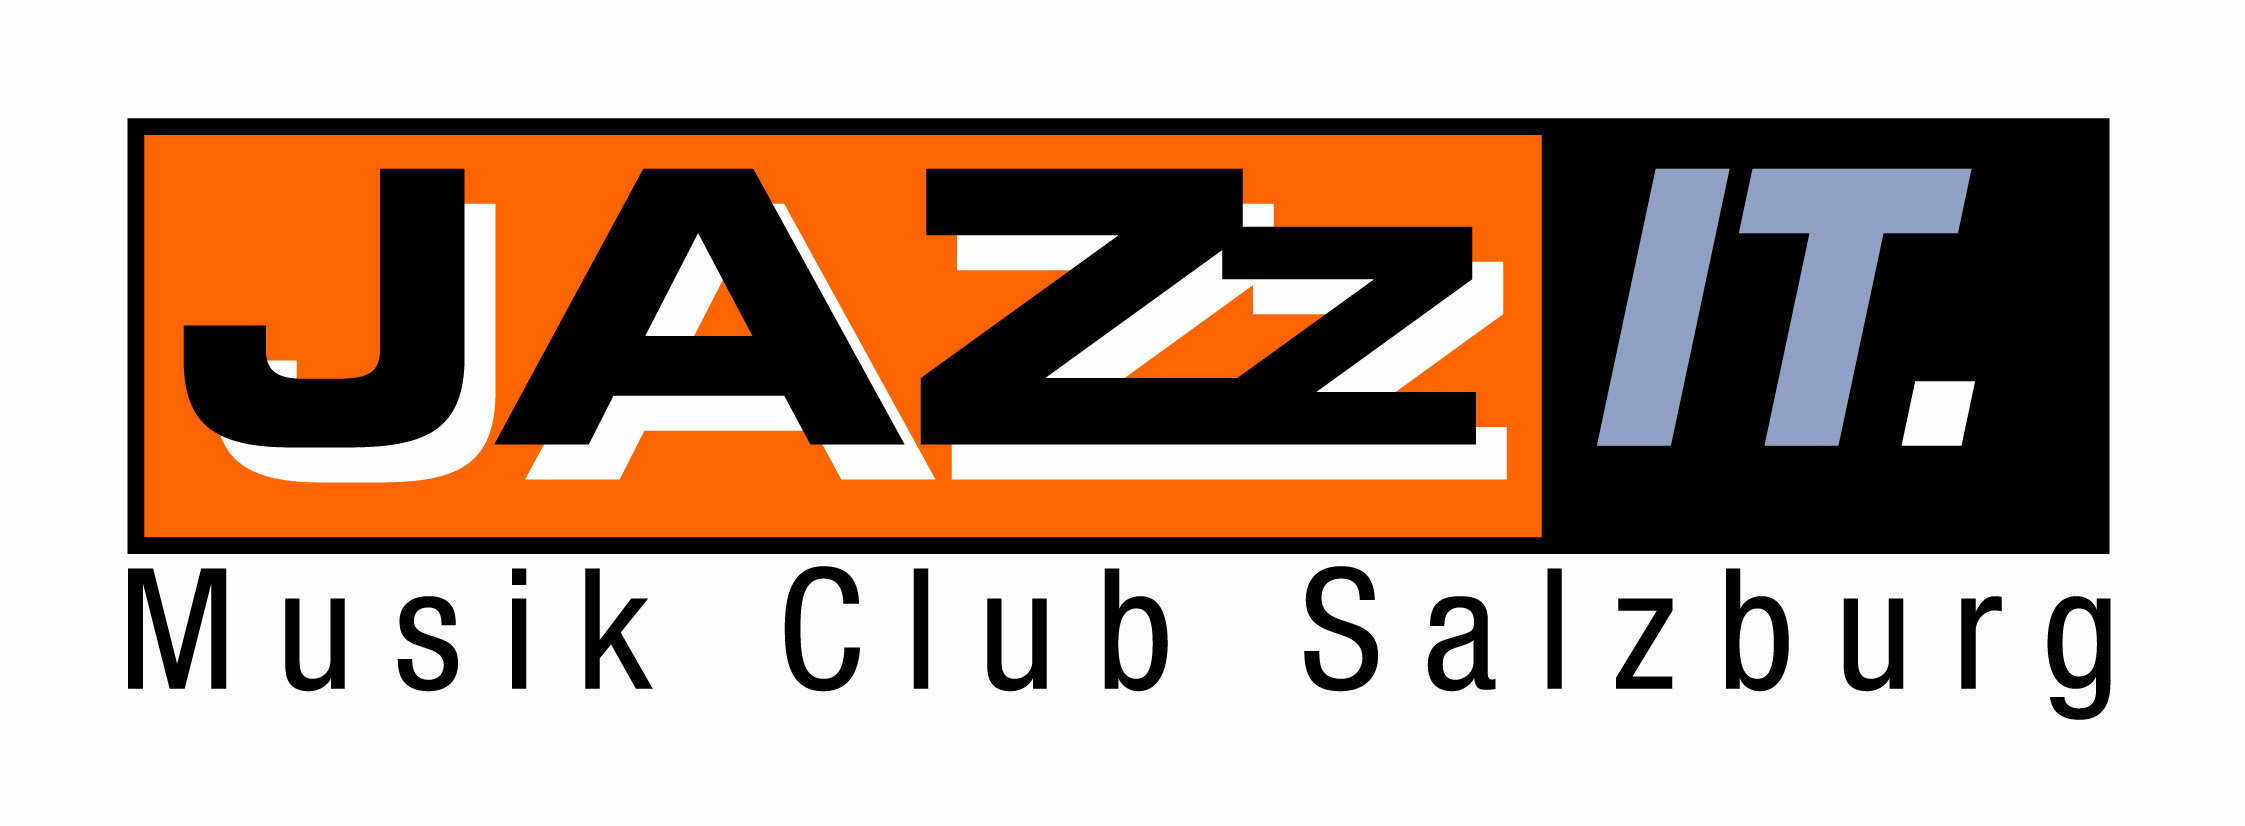 http://www.jazzit.at/site/images/stories/download/jazzit_logo.jpg